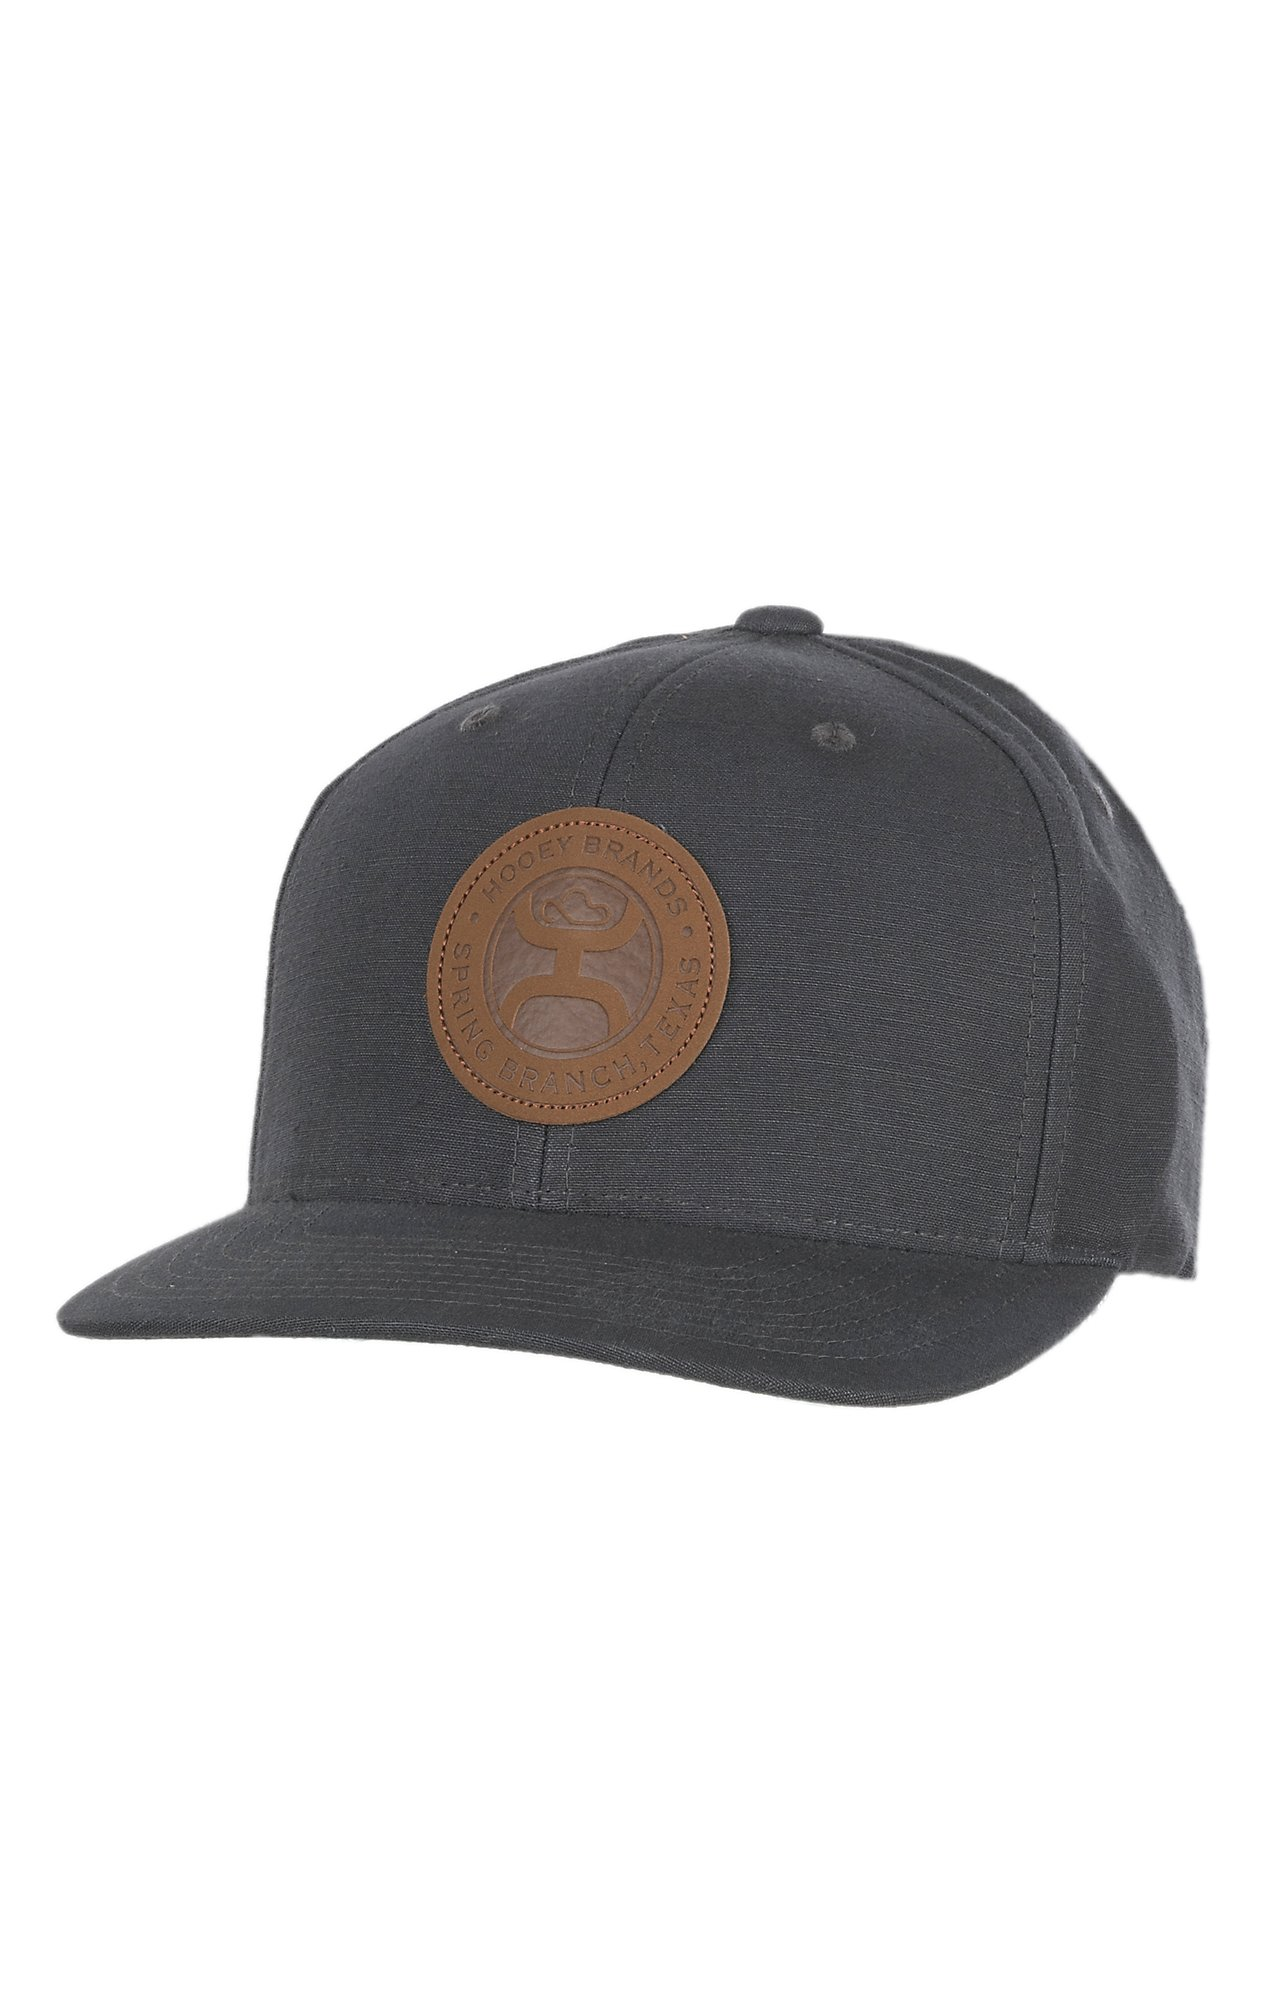 58e44147c sale bunkhousewestern mens ladies kids caps dac31 f85ca; cheapest hooey  solid buck grey w leather logo patch snap back cap cavenders f5e17 54ac3